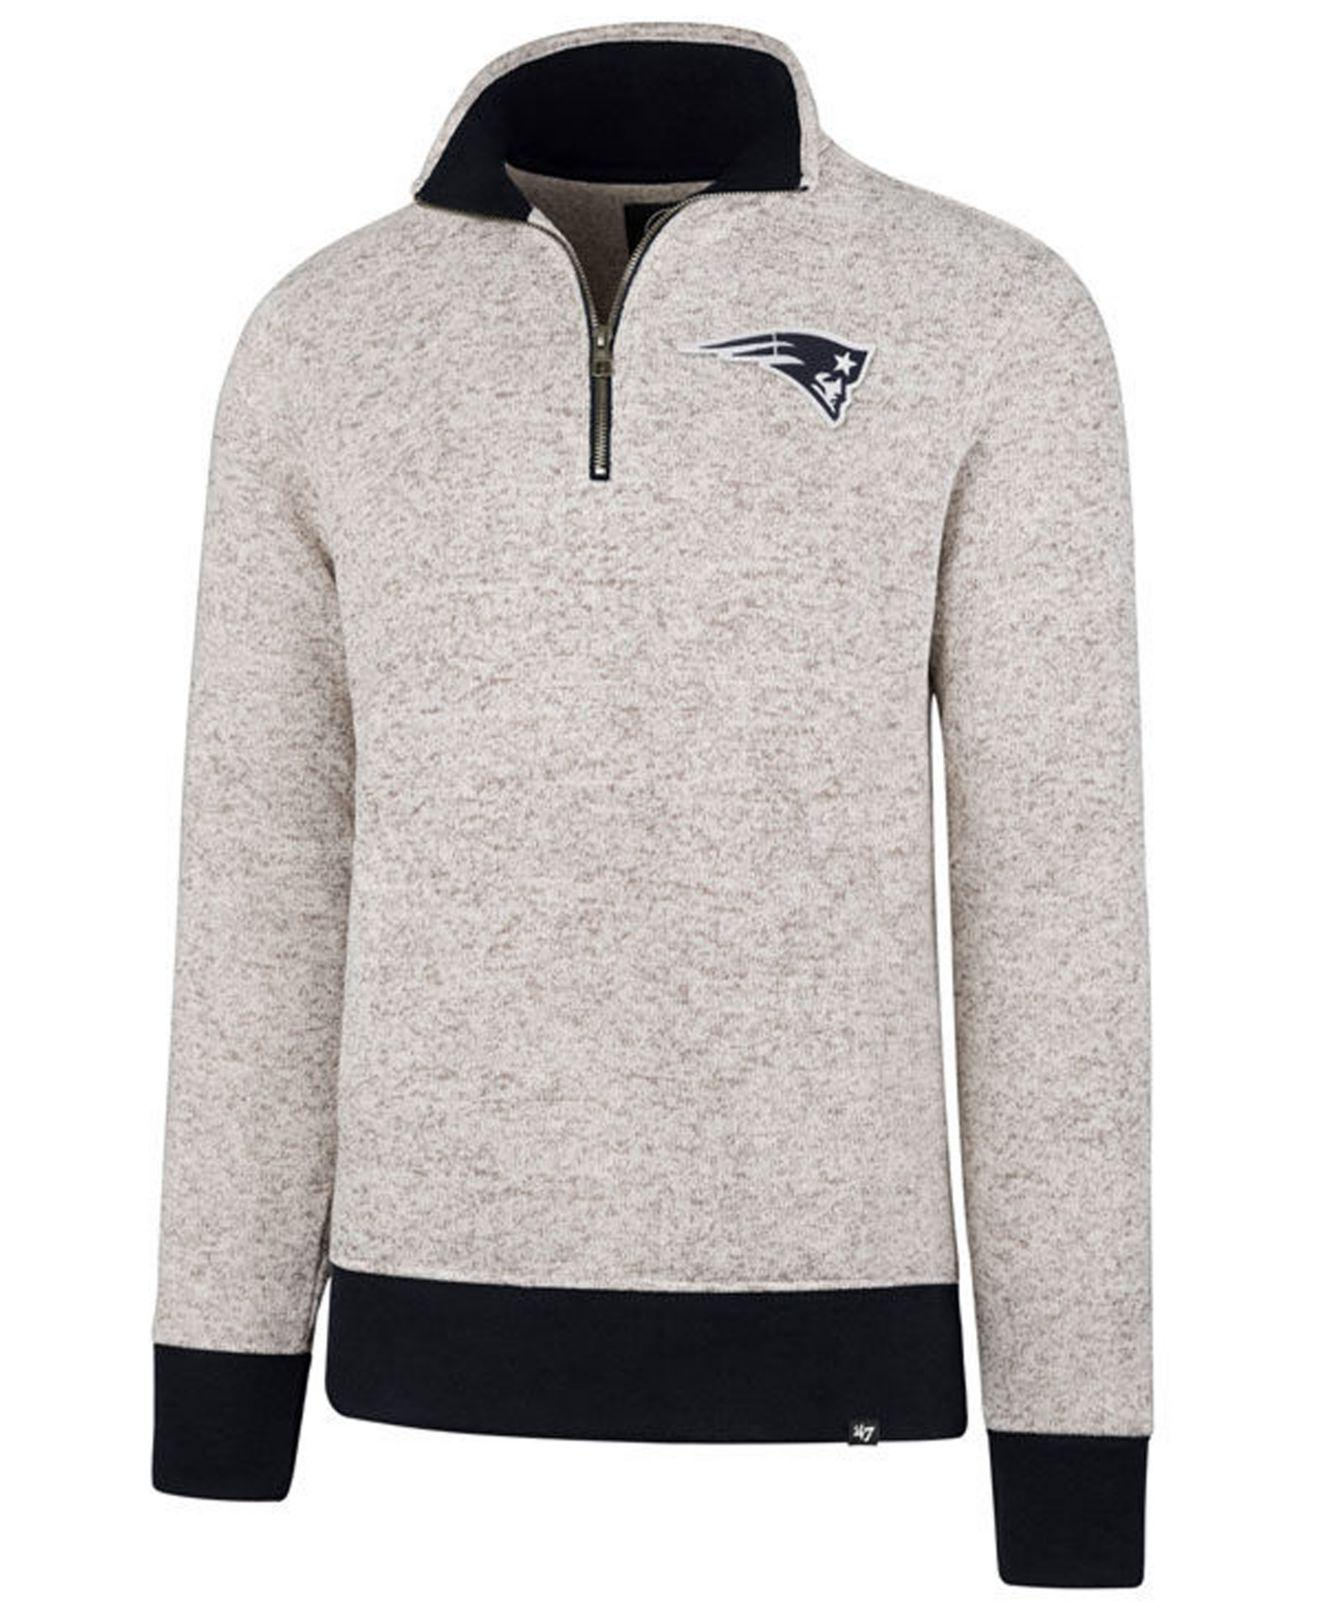 fca65a6bf Lyst - 47 Brand New England Patriots Kodiak Quarter-zip Pullover in ...